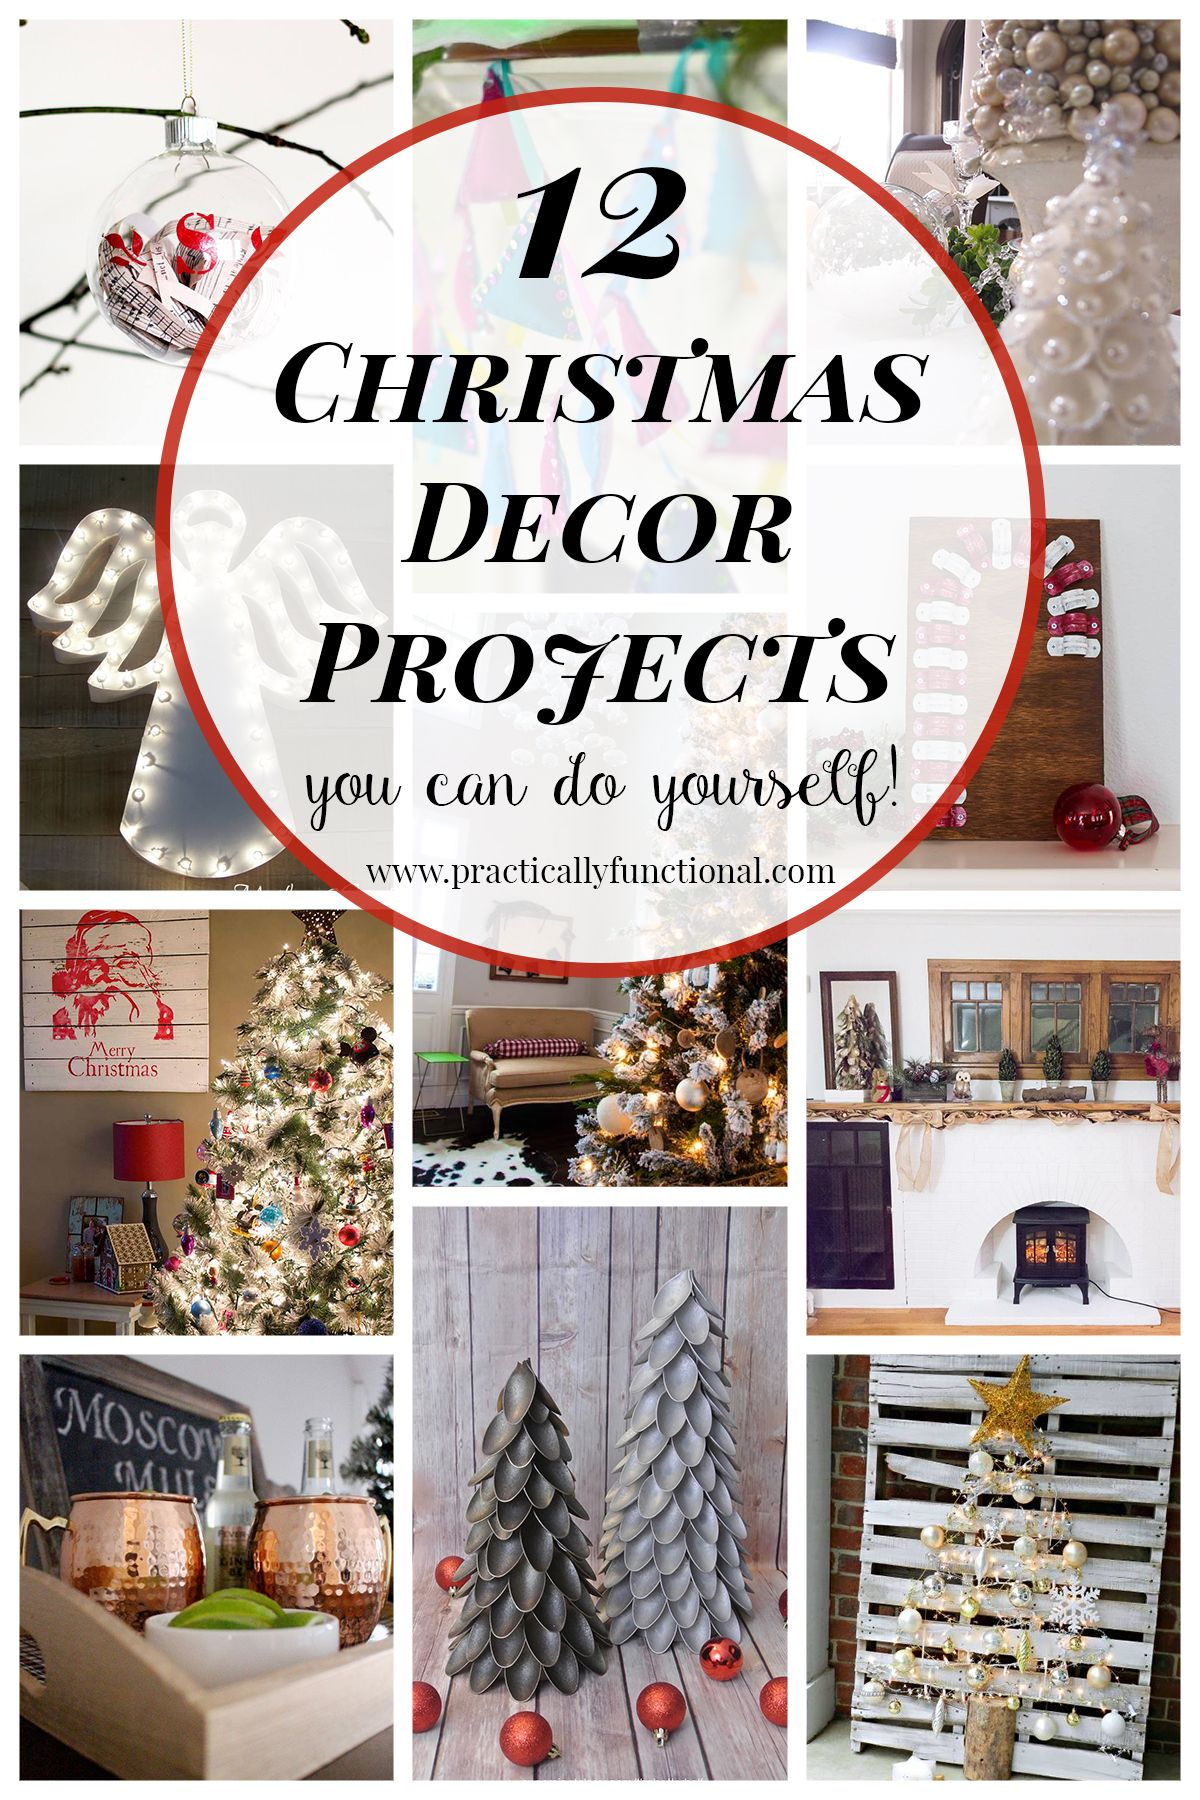 12 diy christmas decor projects christmas decor interior design 12 diy christmas decor projects solutioingenieria Choice Image